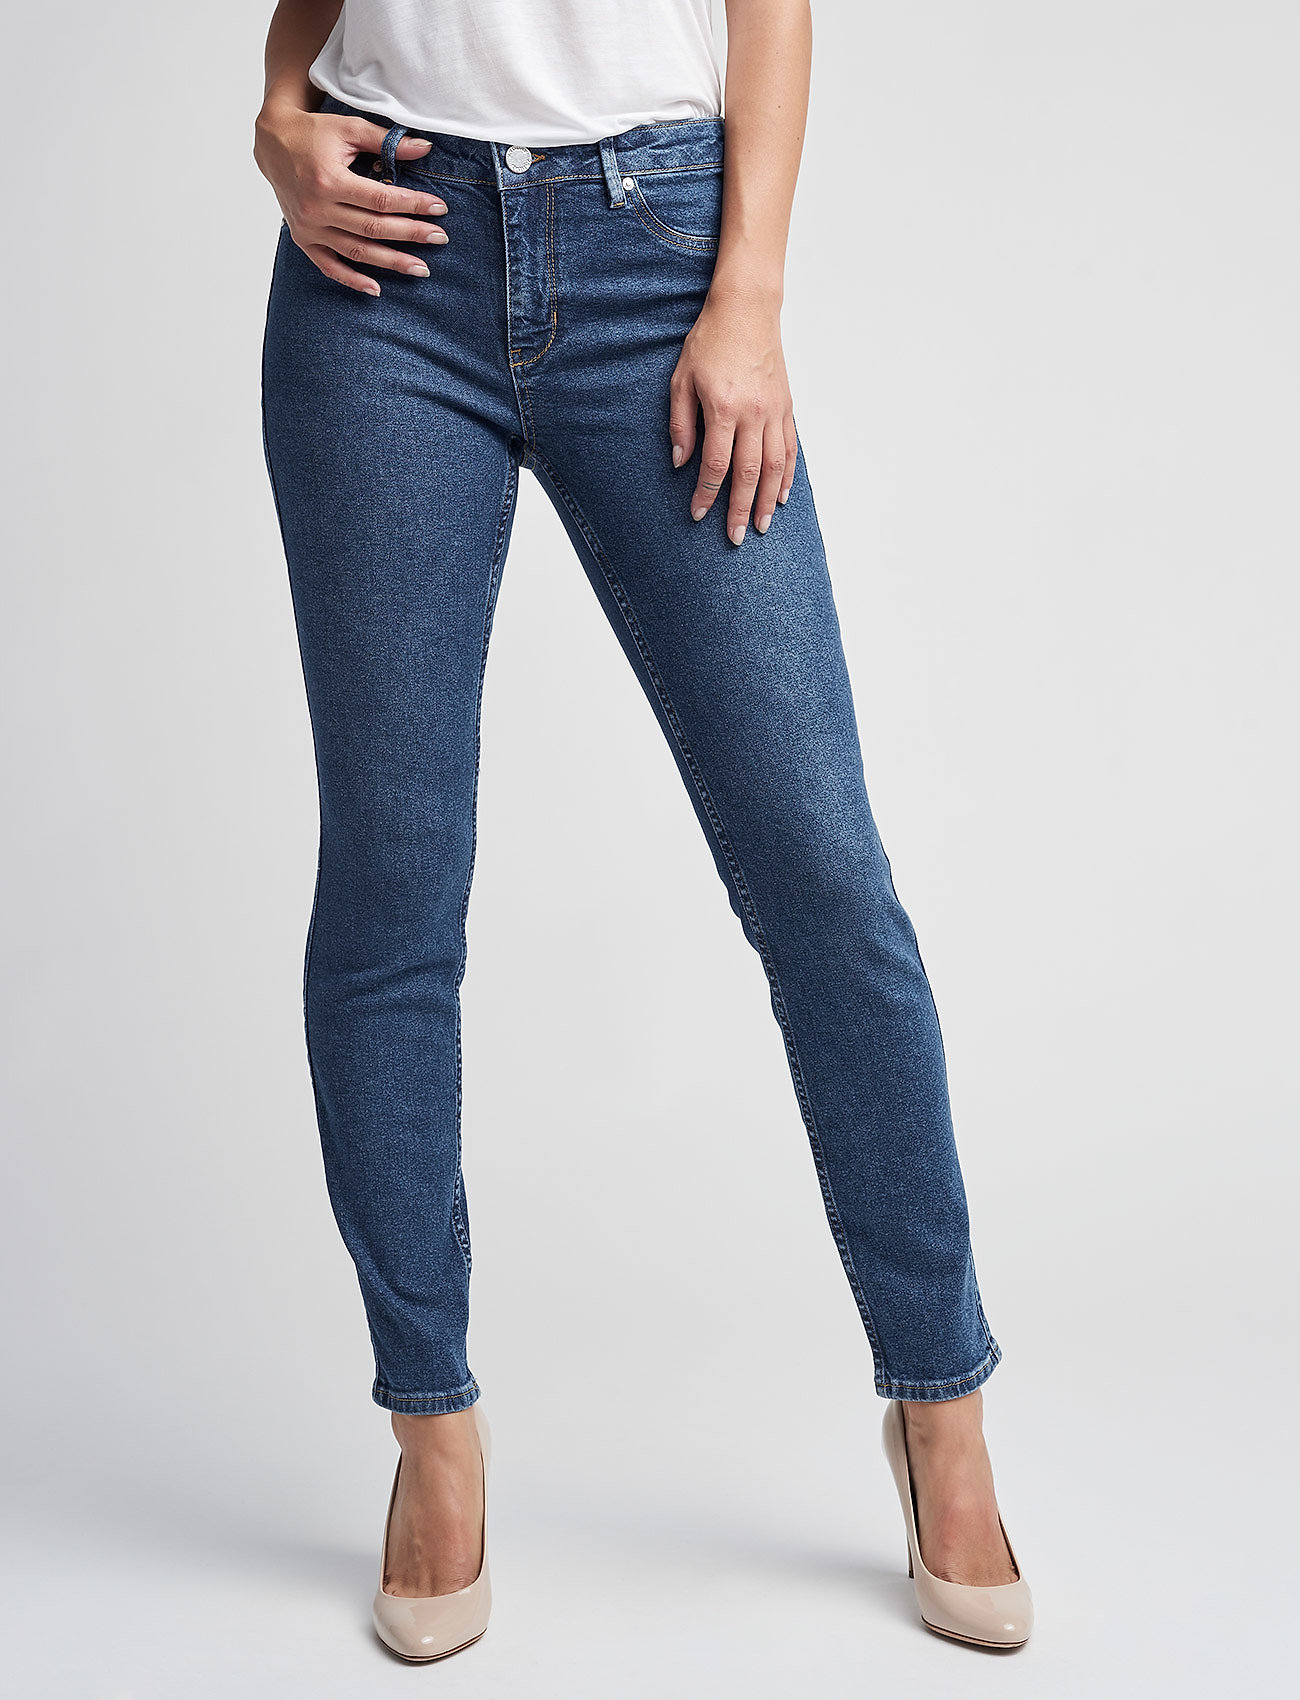 2NDDAY - 2ND Jolie Wauw Cropped - skinny jeans - intense blue - 0